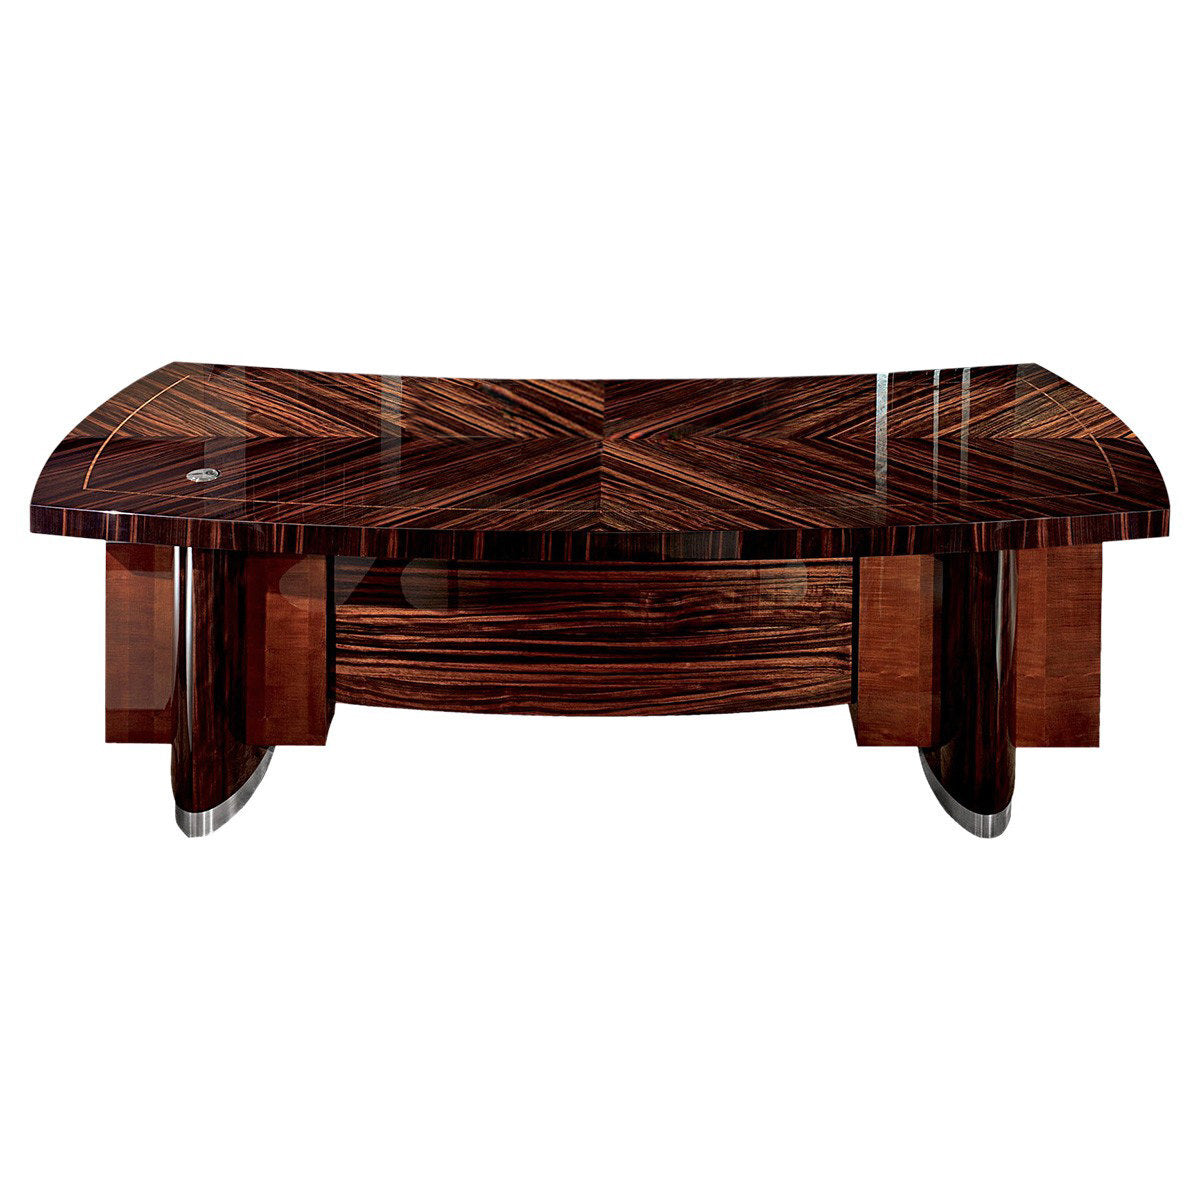 High Gloss Macassar Ebony Desk Zebra contrast accents